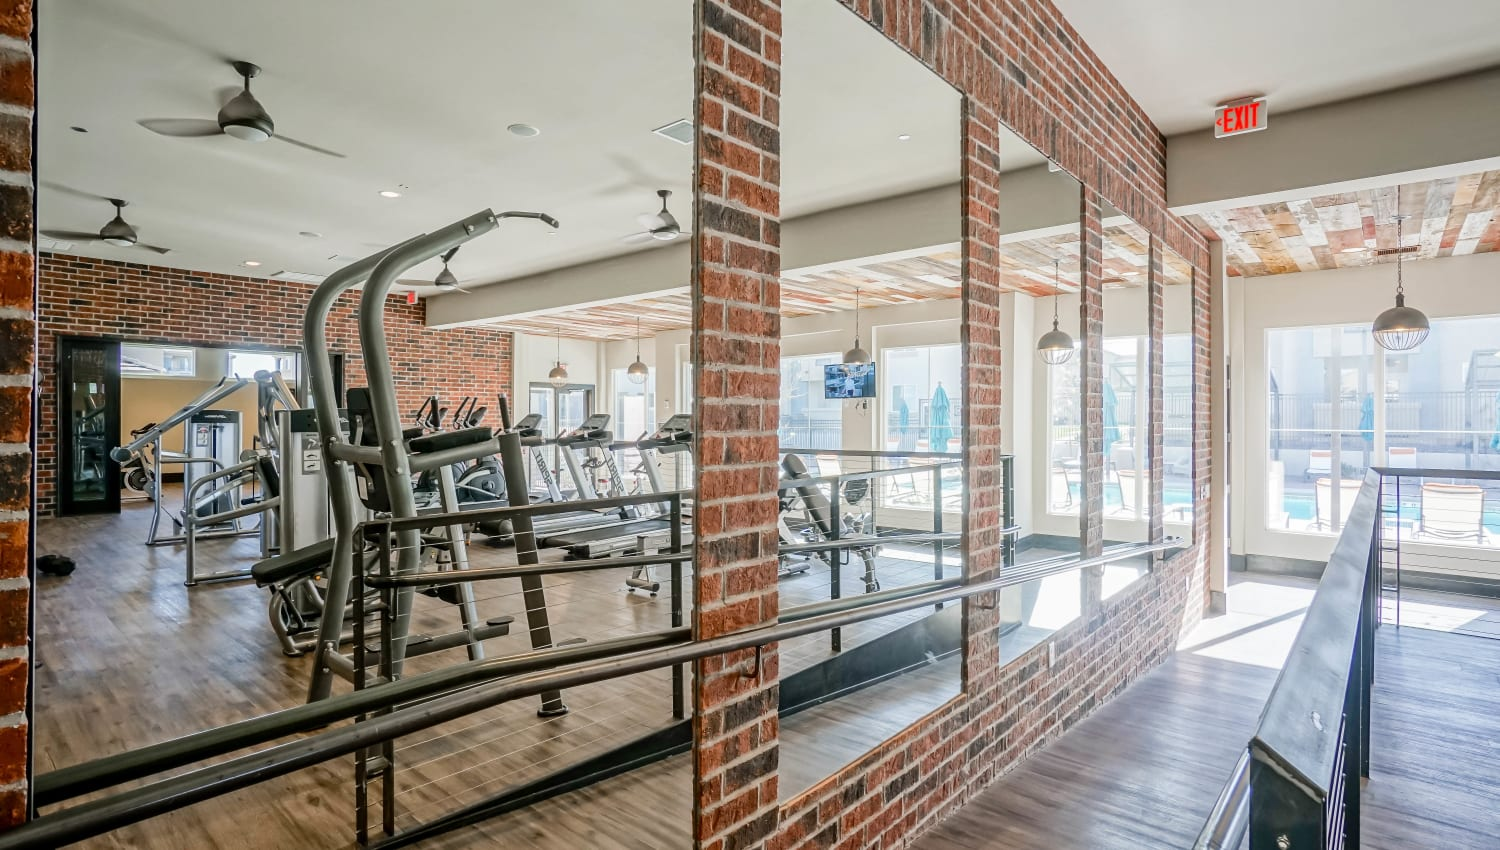 Equipment reflected in the full-length mirrors in the fitness center at Olympus Northpoint in Albuquerque, New Mexico